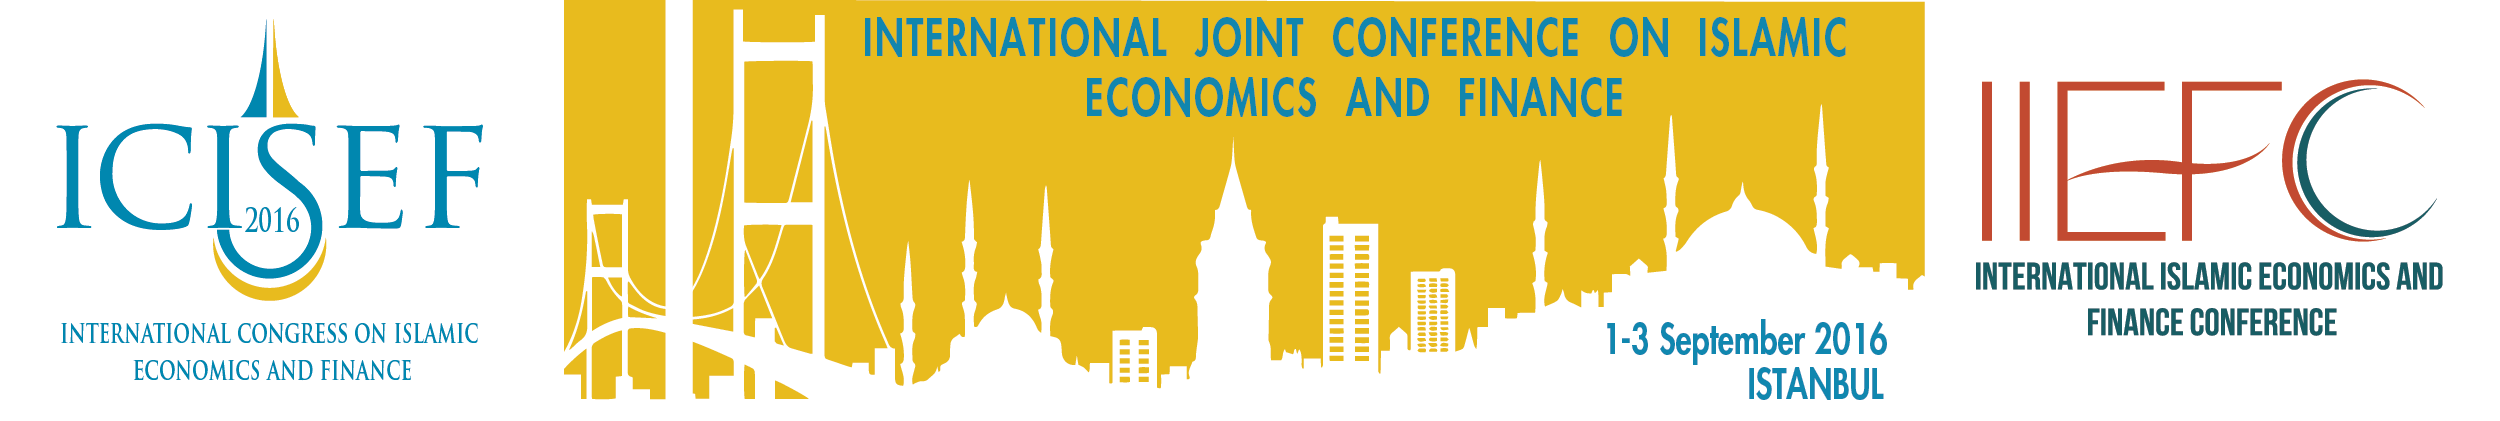 Call for Papers: International Congress on Islamic Economics and Finance